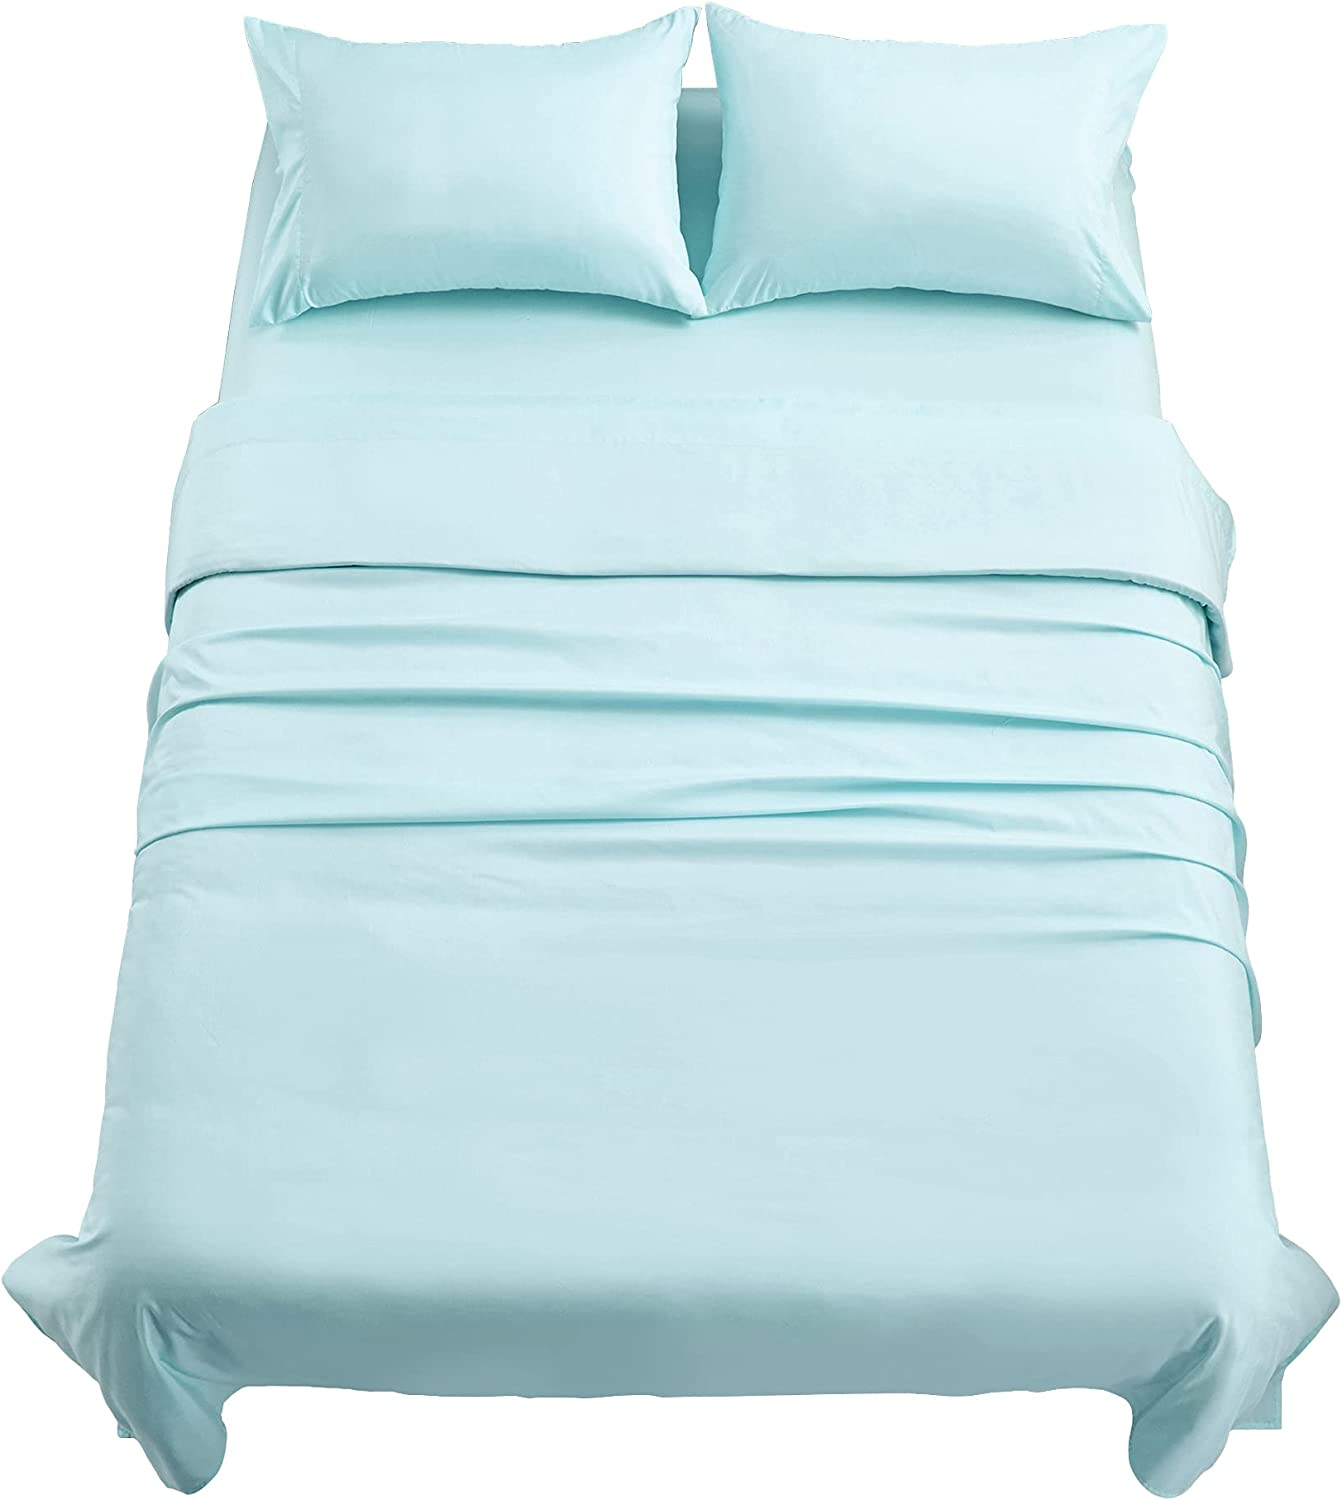 Mooreeke Bamboo Sheets Set Super beauty It is very popular product restock quality top Twin with Bed Pocket Cooling Sh Deep